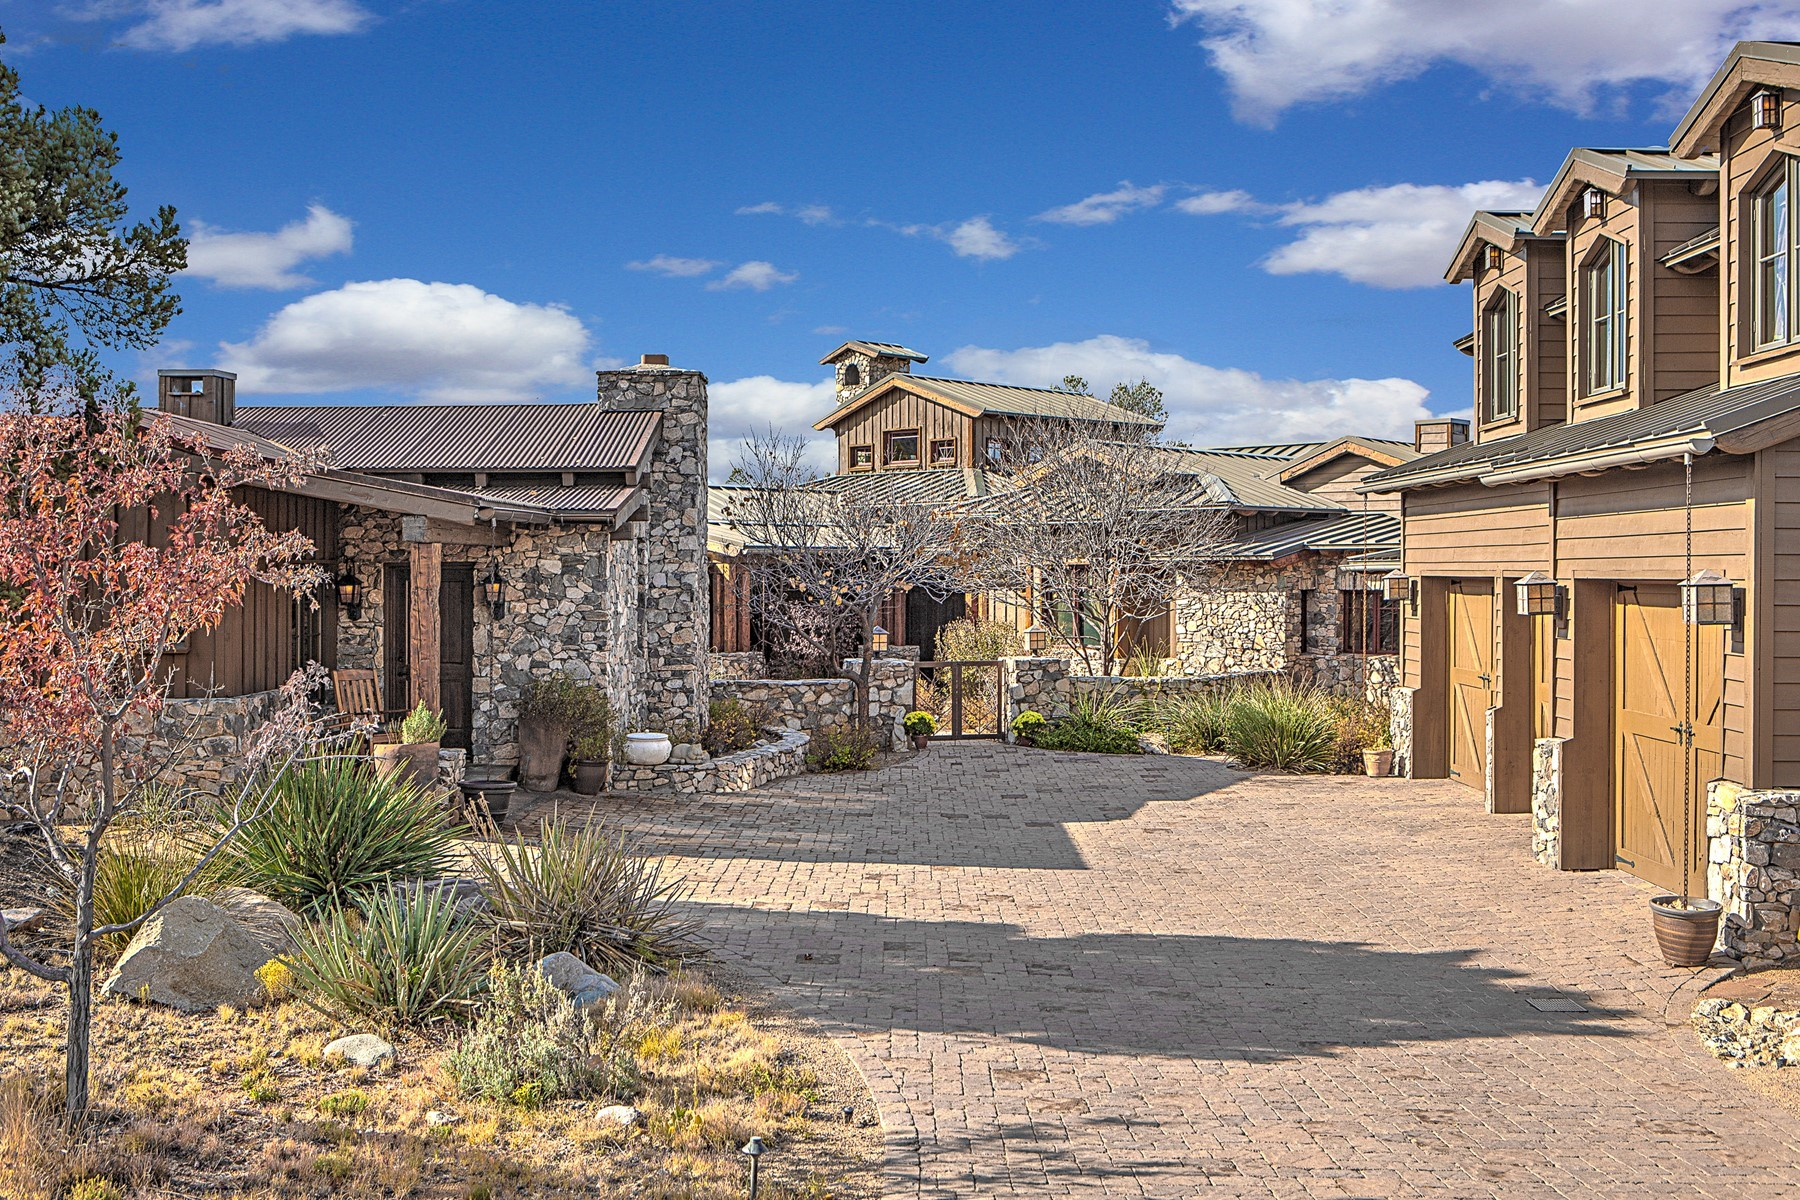 Single Family Homes for Sale at Cooper Morgan Ranch 14740 N Agave Meadow Way Prescott, Arizona 86305 United States